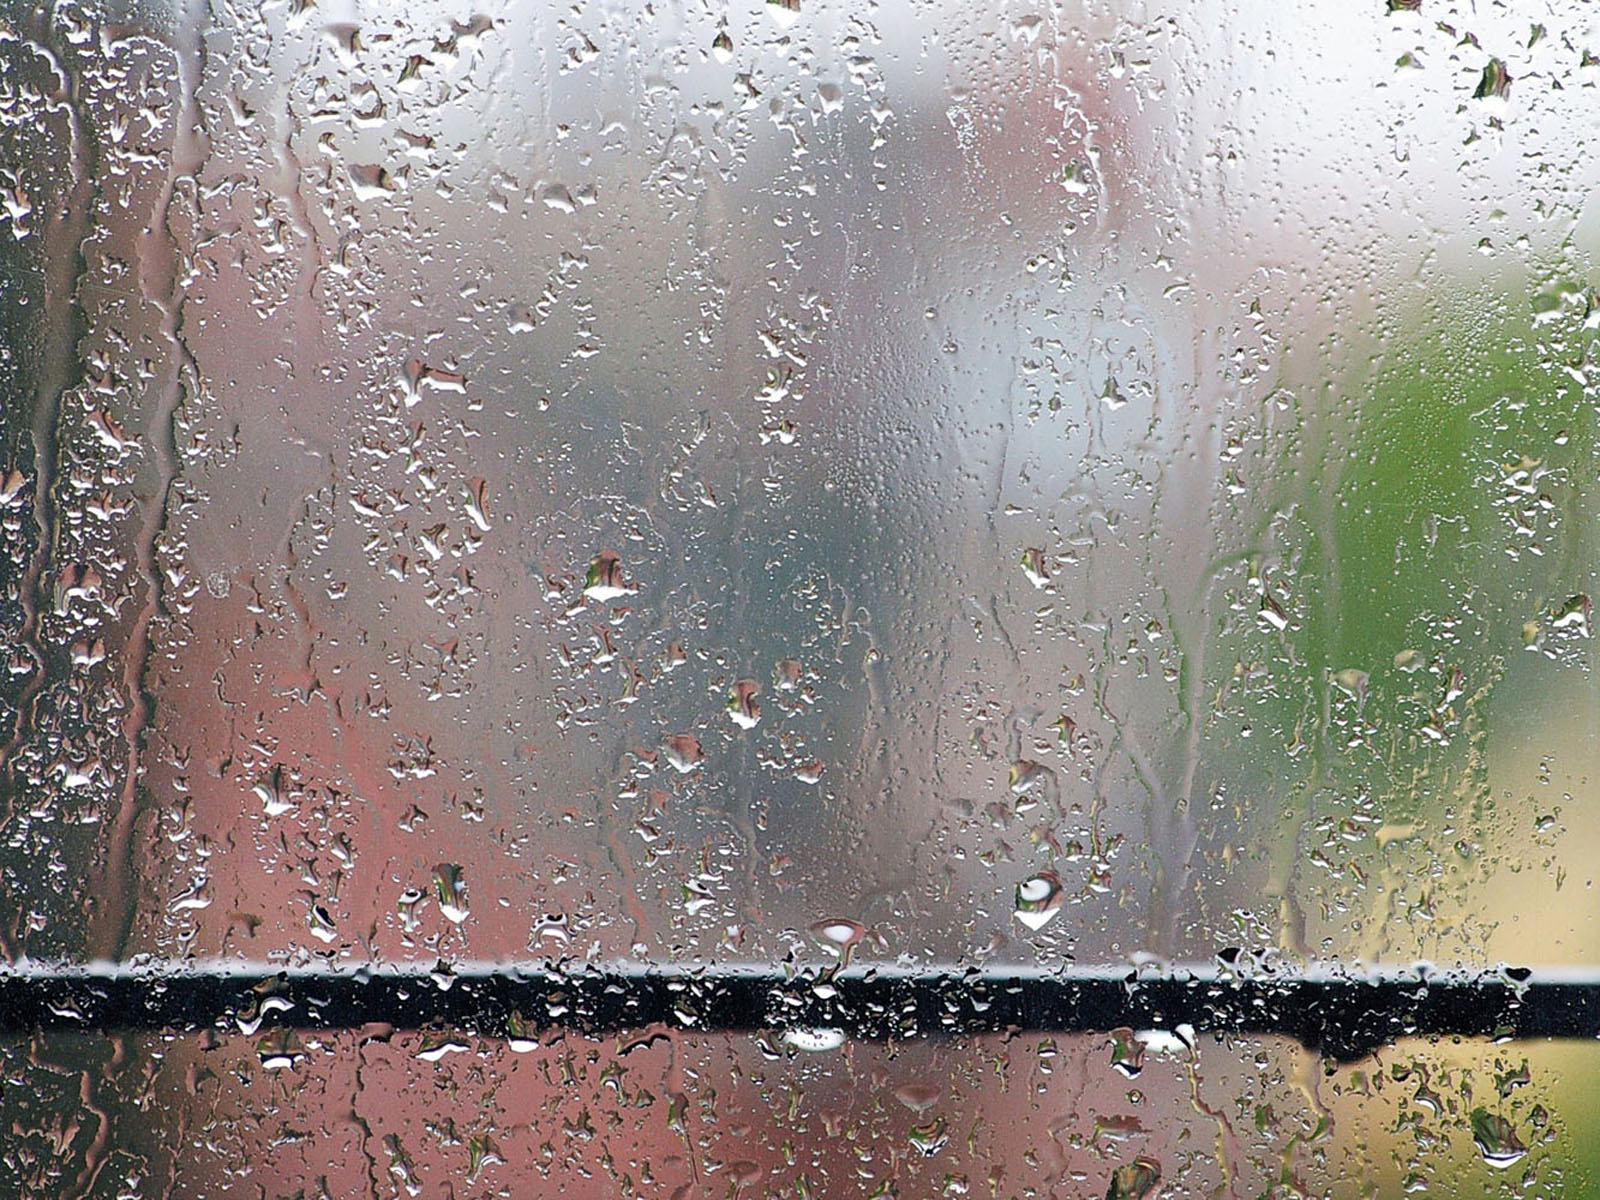 Good Morning Rainy Images: Wallpapers: Rainy Morning Wallpapers